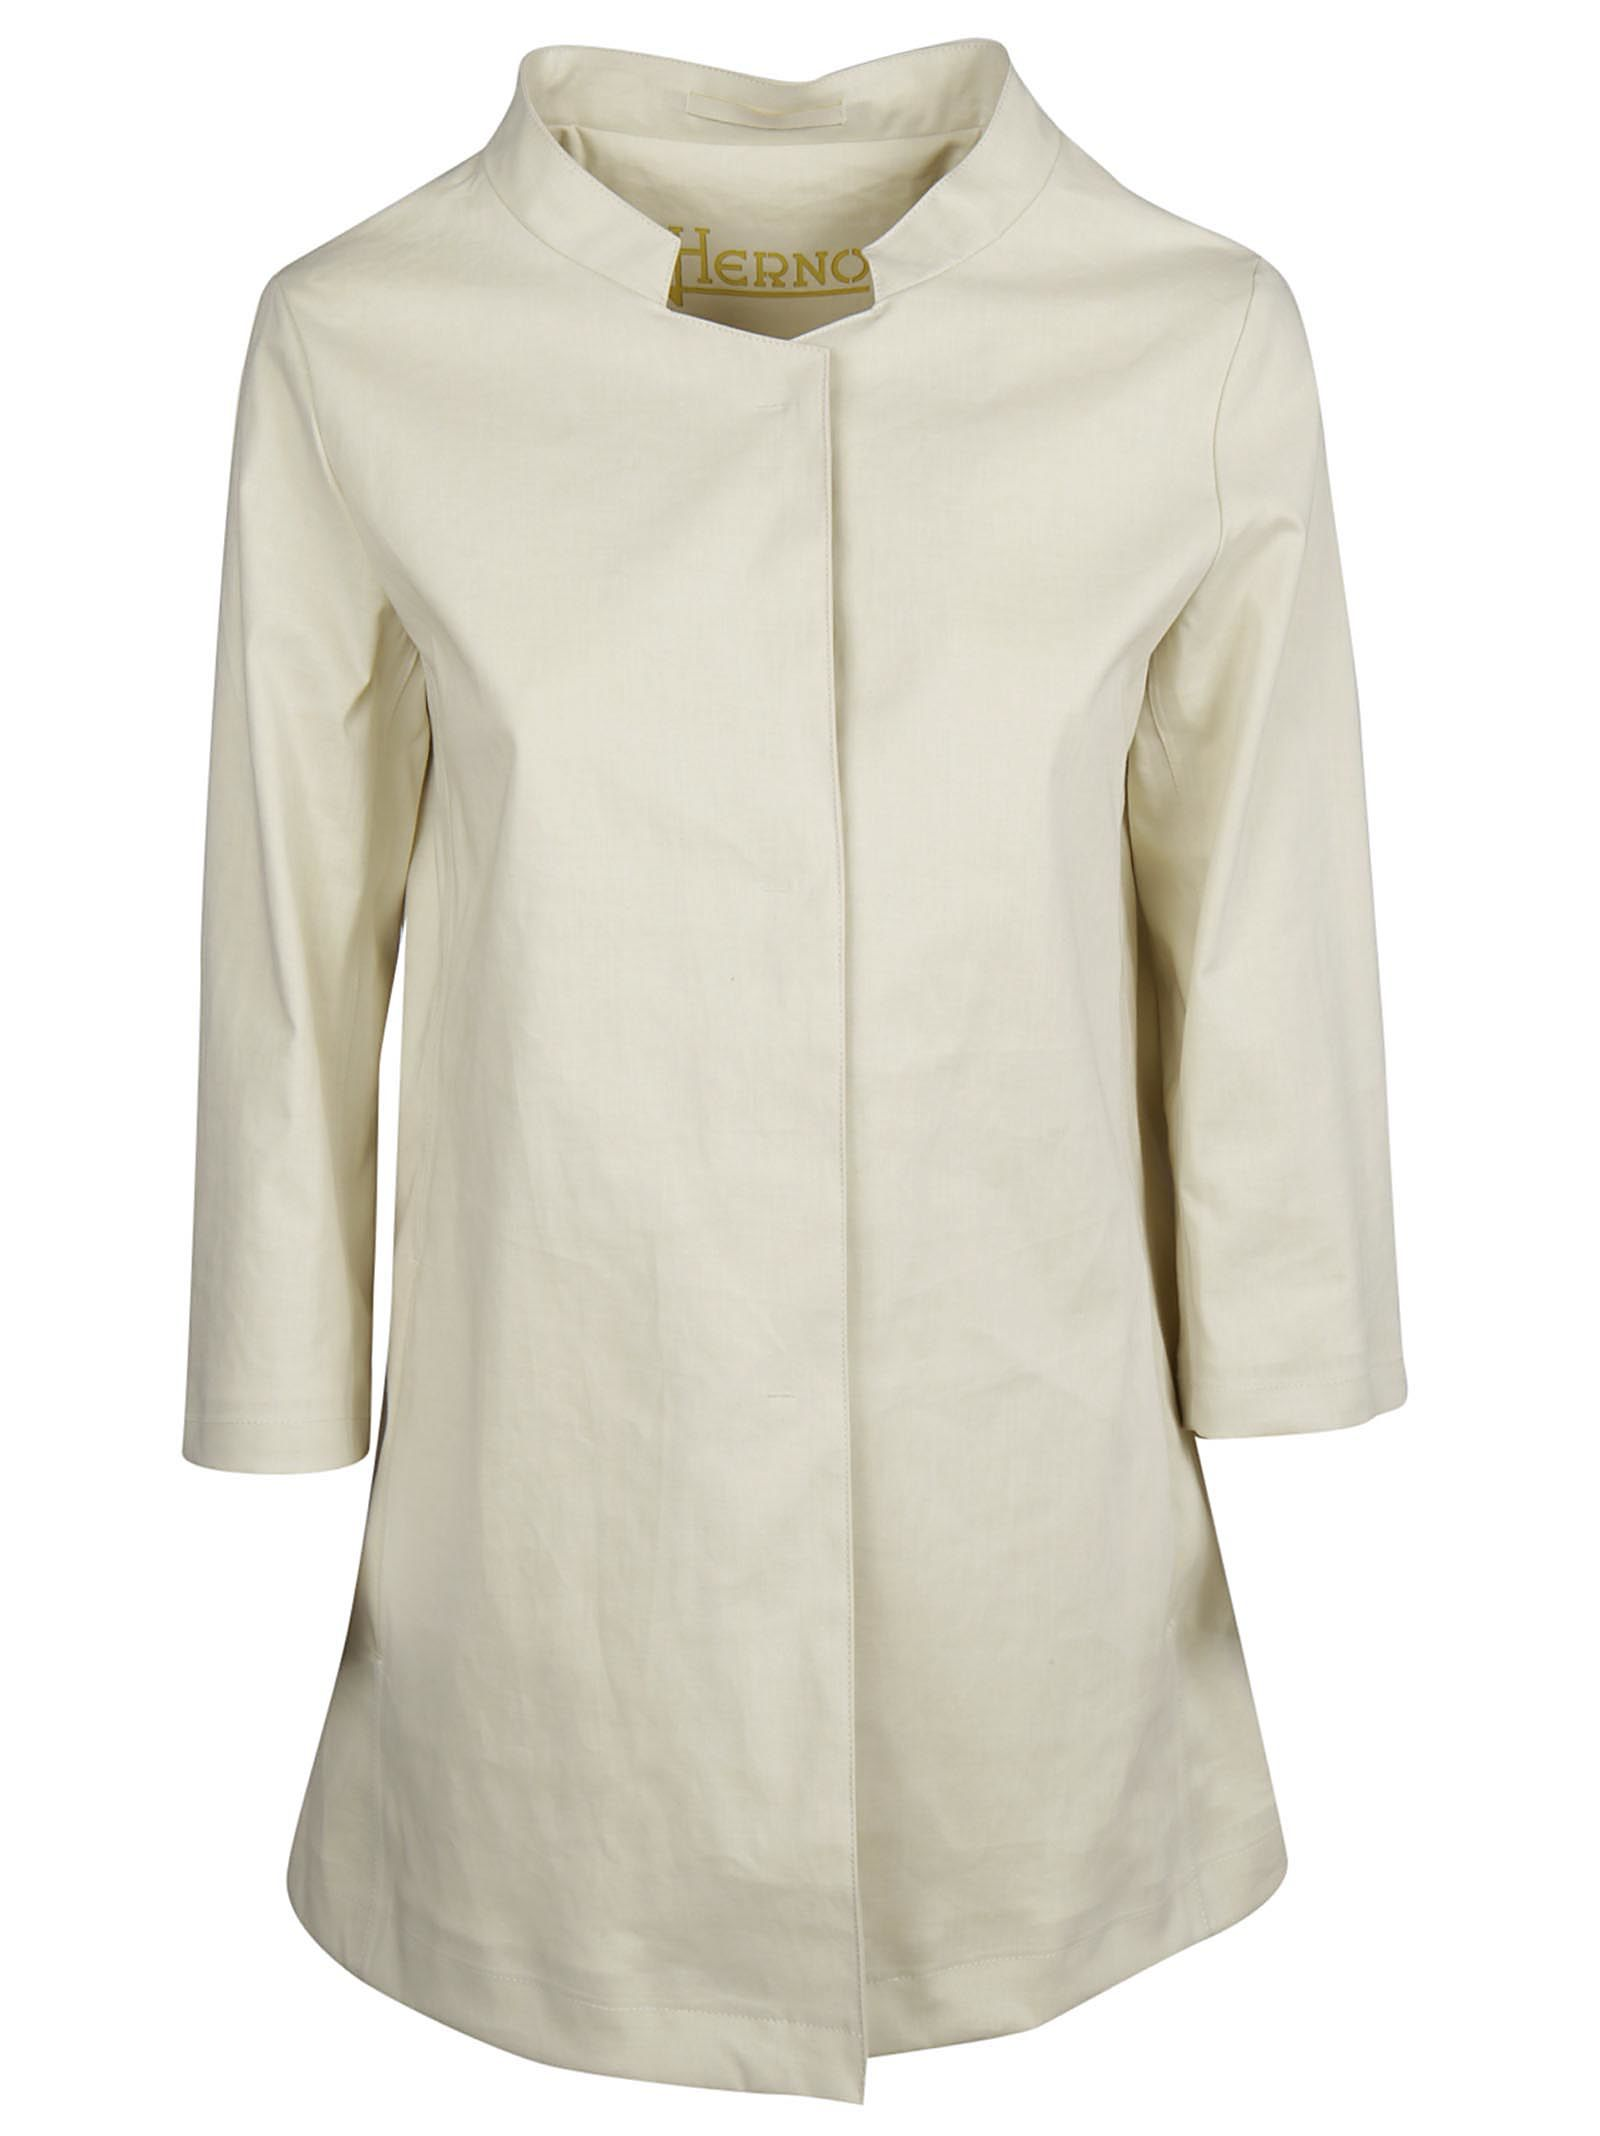 Herno Button Up Coat